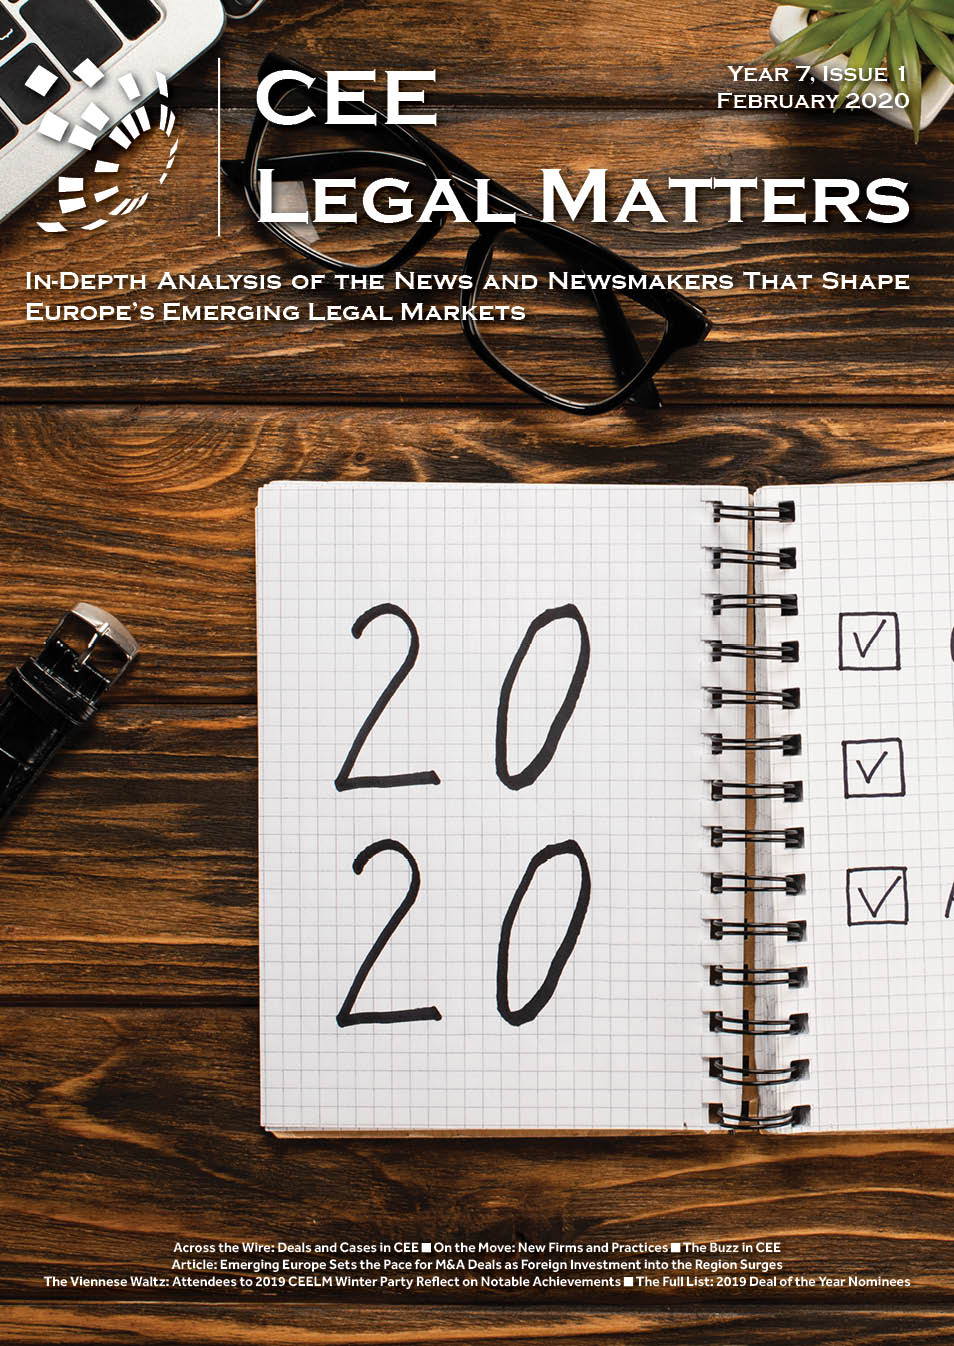 CEE Legal Matters: Issue 7.1